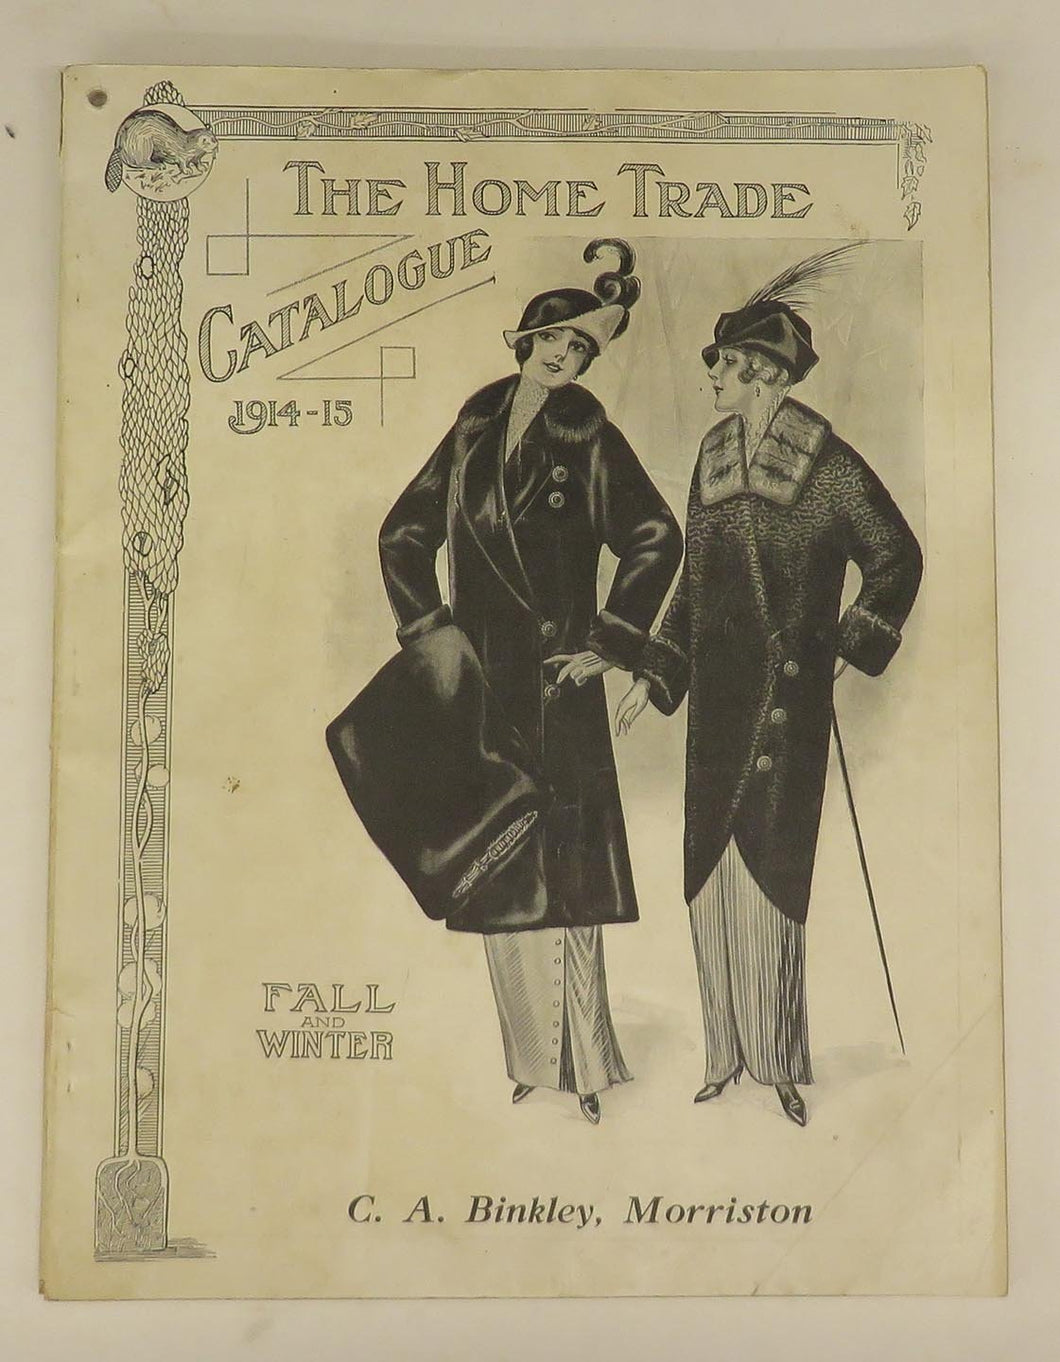 The Home Trade Catalogue 1914-15, Fall and Winter